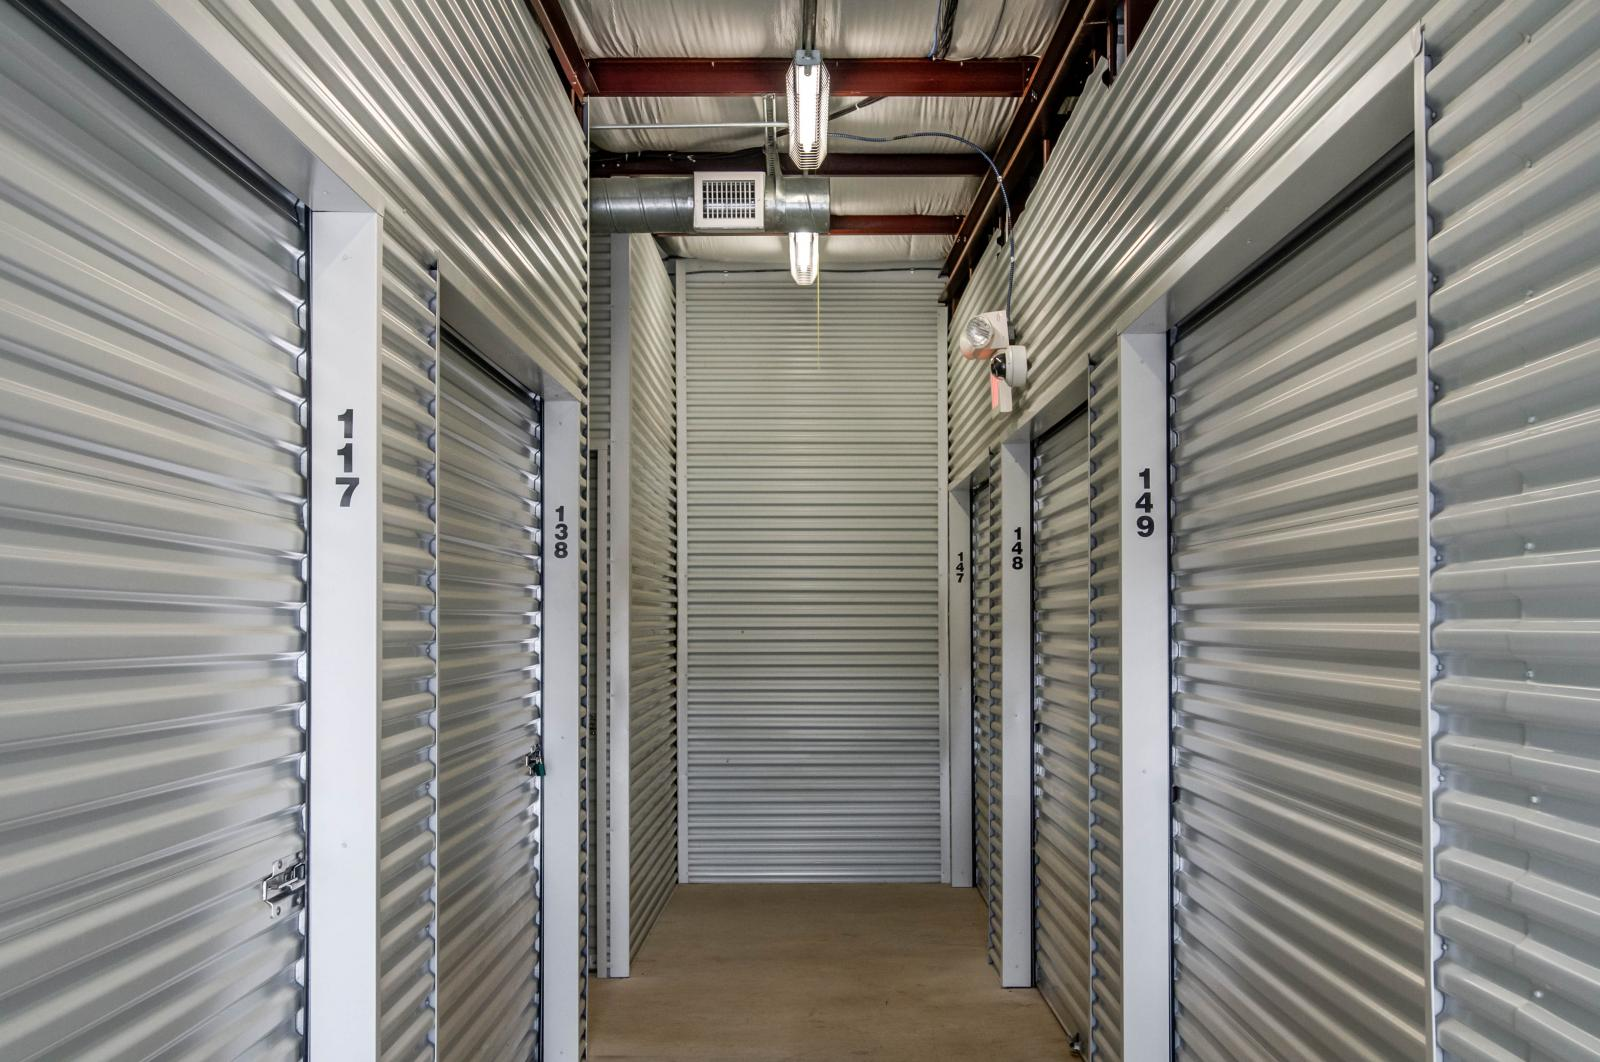 A common view from the inside of a self storage building.